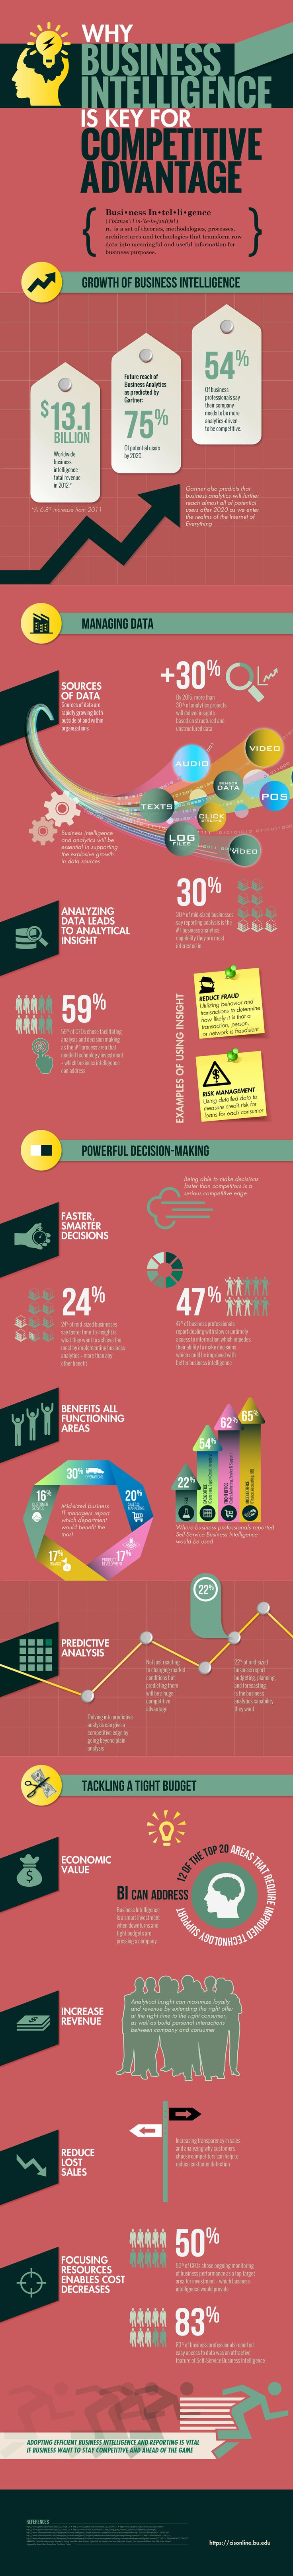 In today's ultra-competitive world, it is vital that businesses succeed in finding ways to stand out from the competition. Business intelligence is key to gaining this advantage and is becoming increasingly important to the success of businesses in every industry. #BI #BusinessIntelligence #Infographic